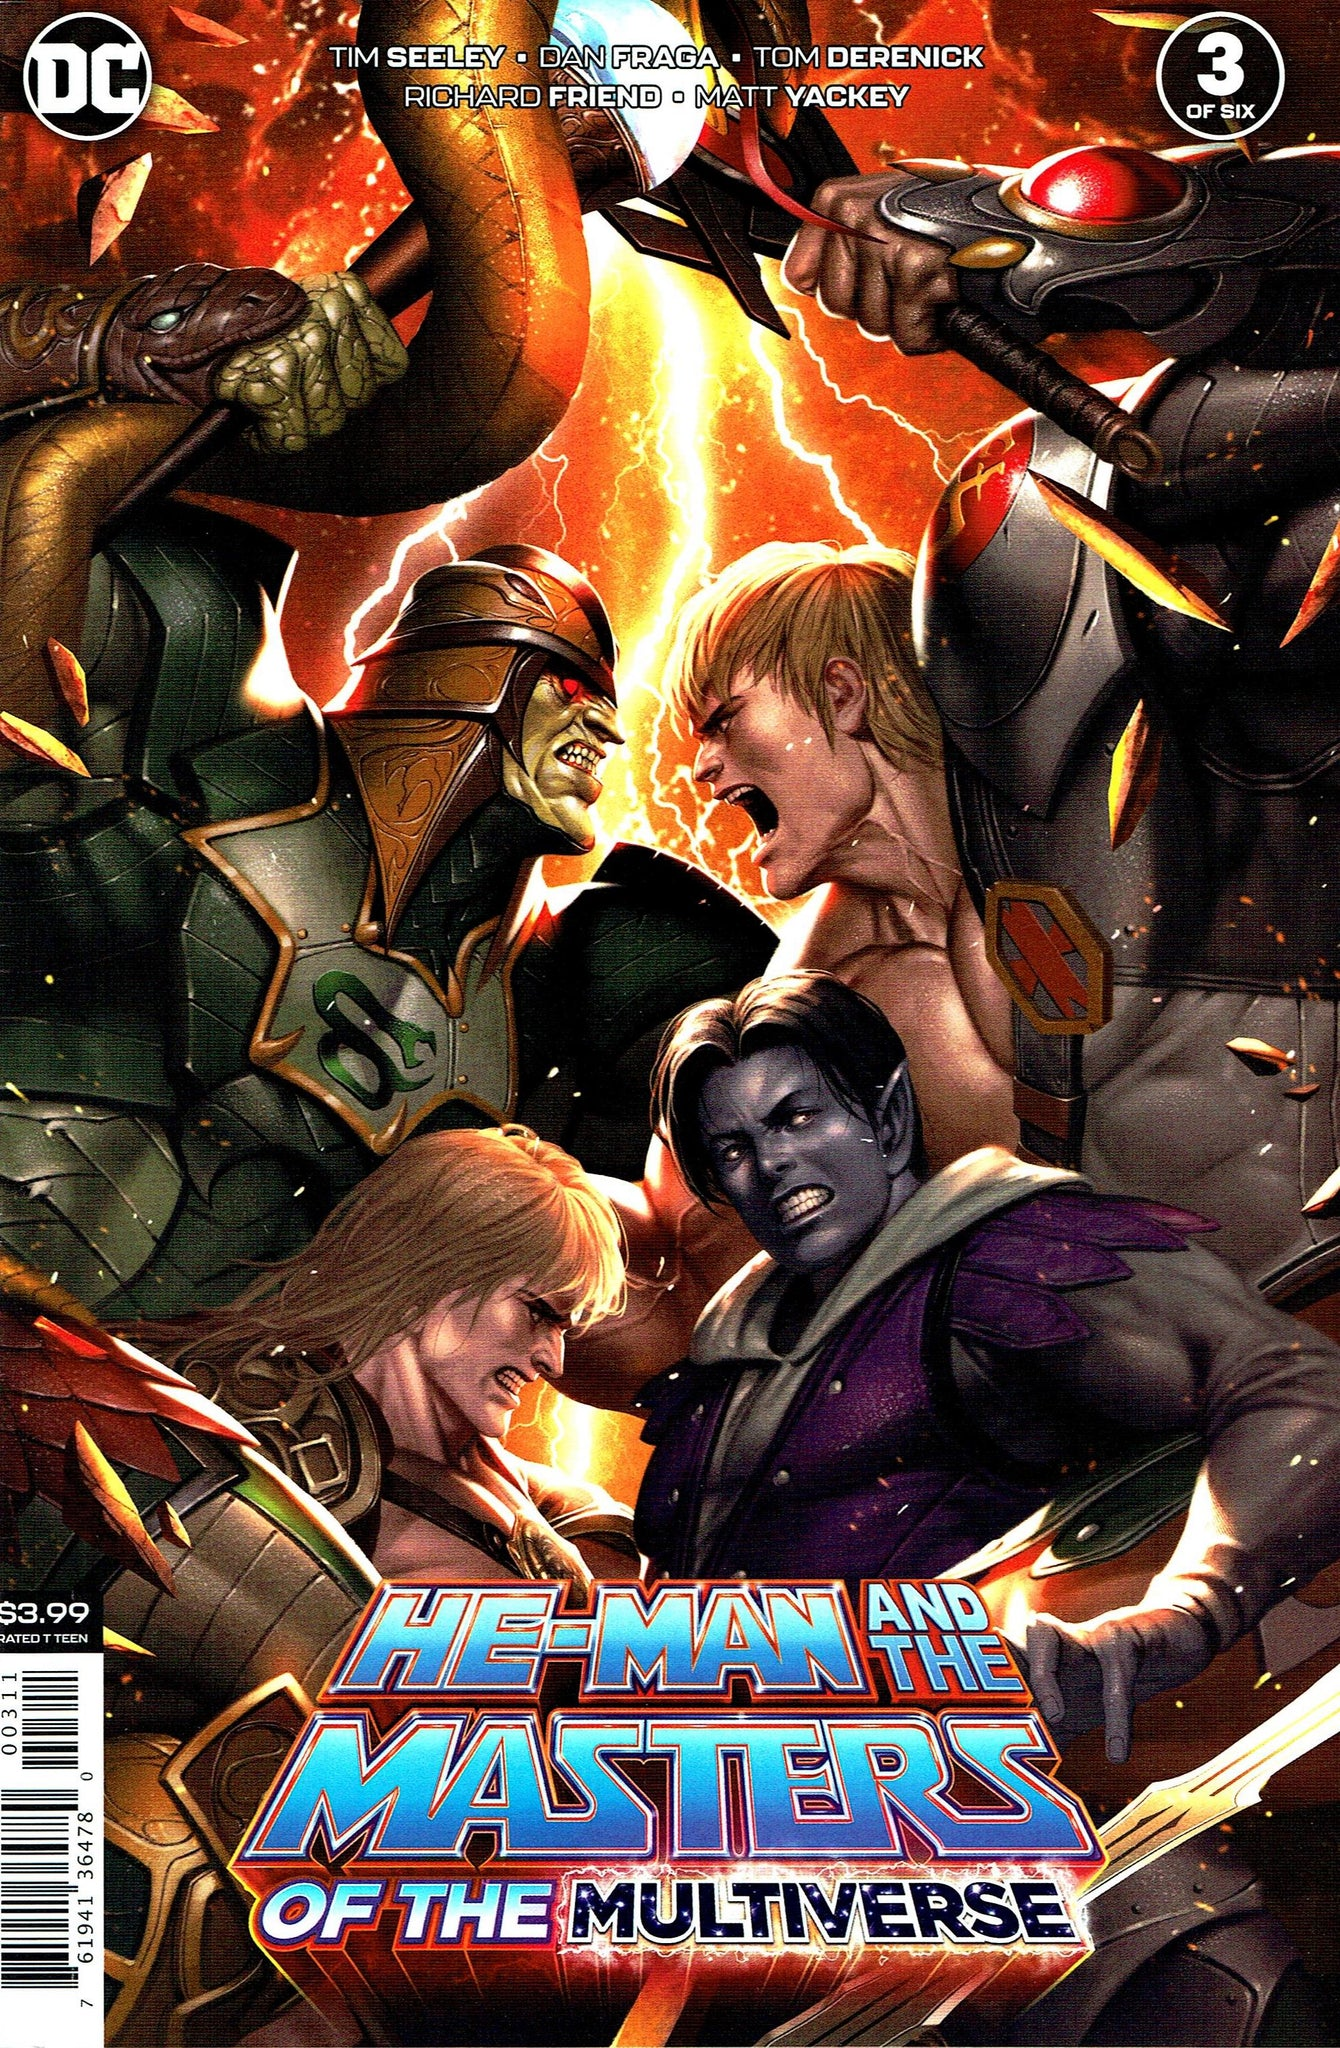 He-Man and the Masters of the Multiverse (2019) #3 (of 6)